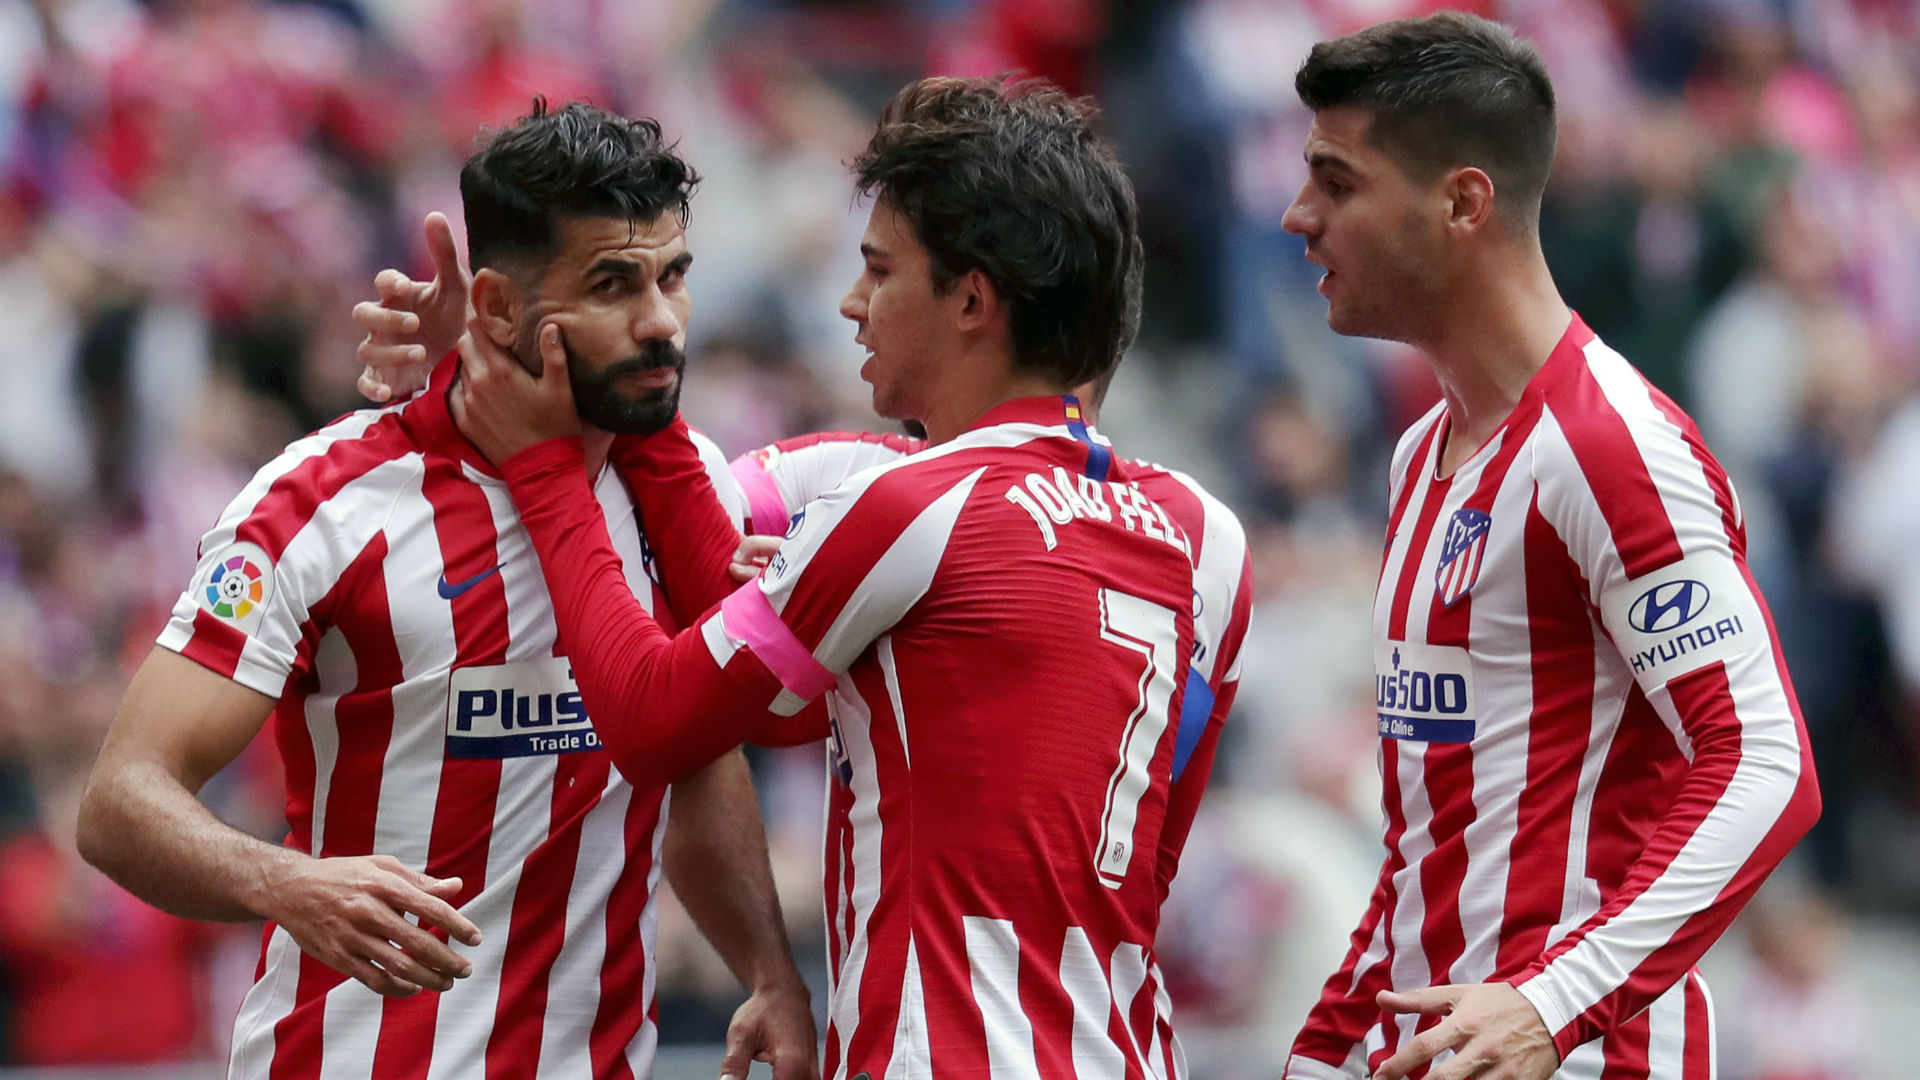 Joao Felix injury 'could be serious' - Simeone